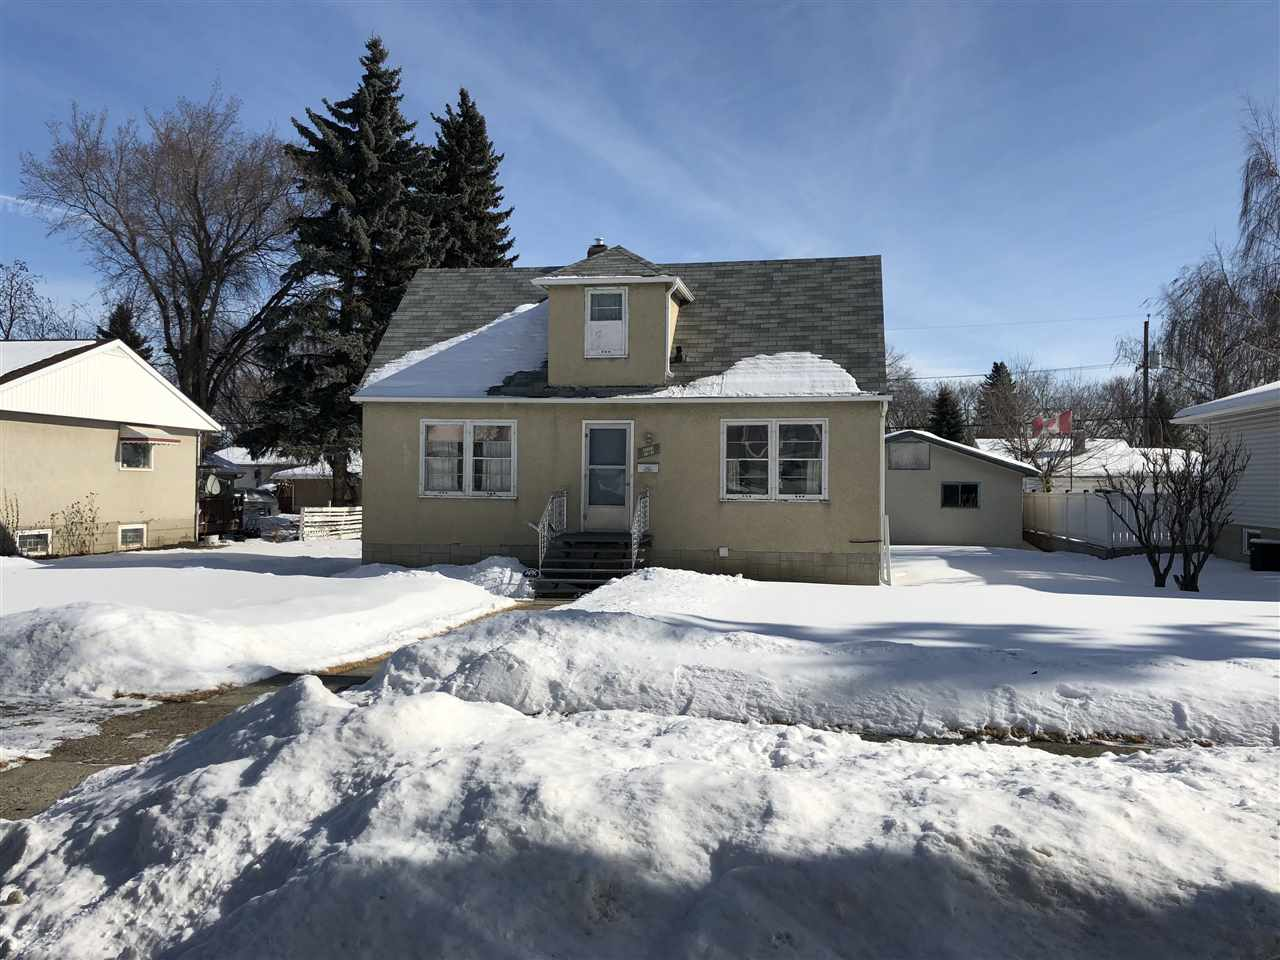 Awesome opportunity in Elmwood Park with this huge 852.68 m2 lot - 75x122. Perfect for any investor or someone wanting to build their dream home. The 1.5 storey home is fully finished and offers 3 bedrooms and 2 baths. Oversized double garage with convenient back lane access located on a quiet street in a mature neighborhood close to schools and all amenities.